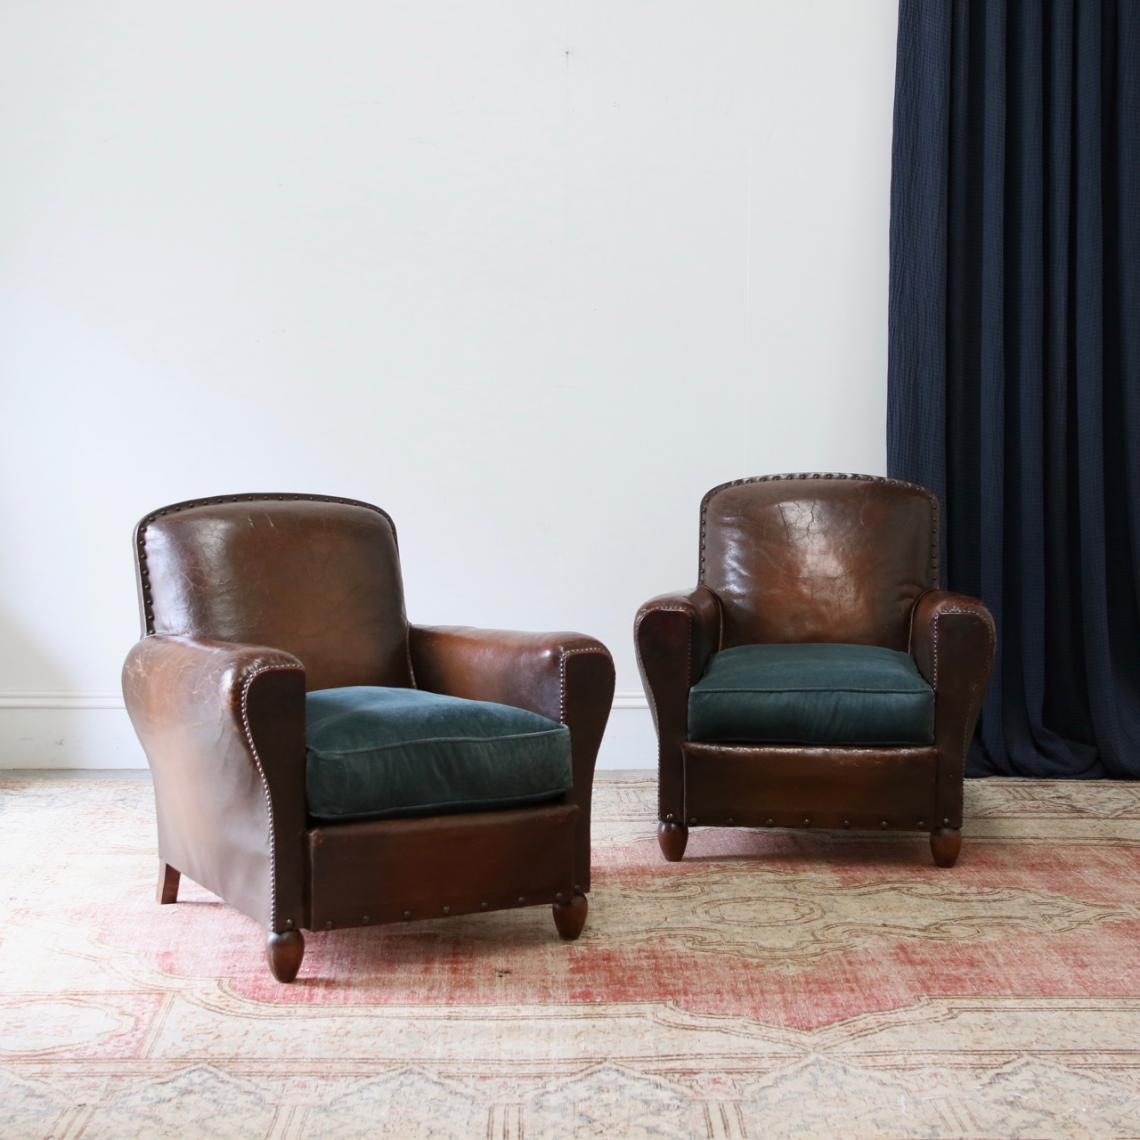 115-69 - Leather Club Chairs